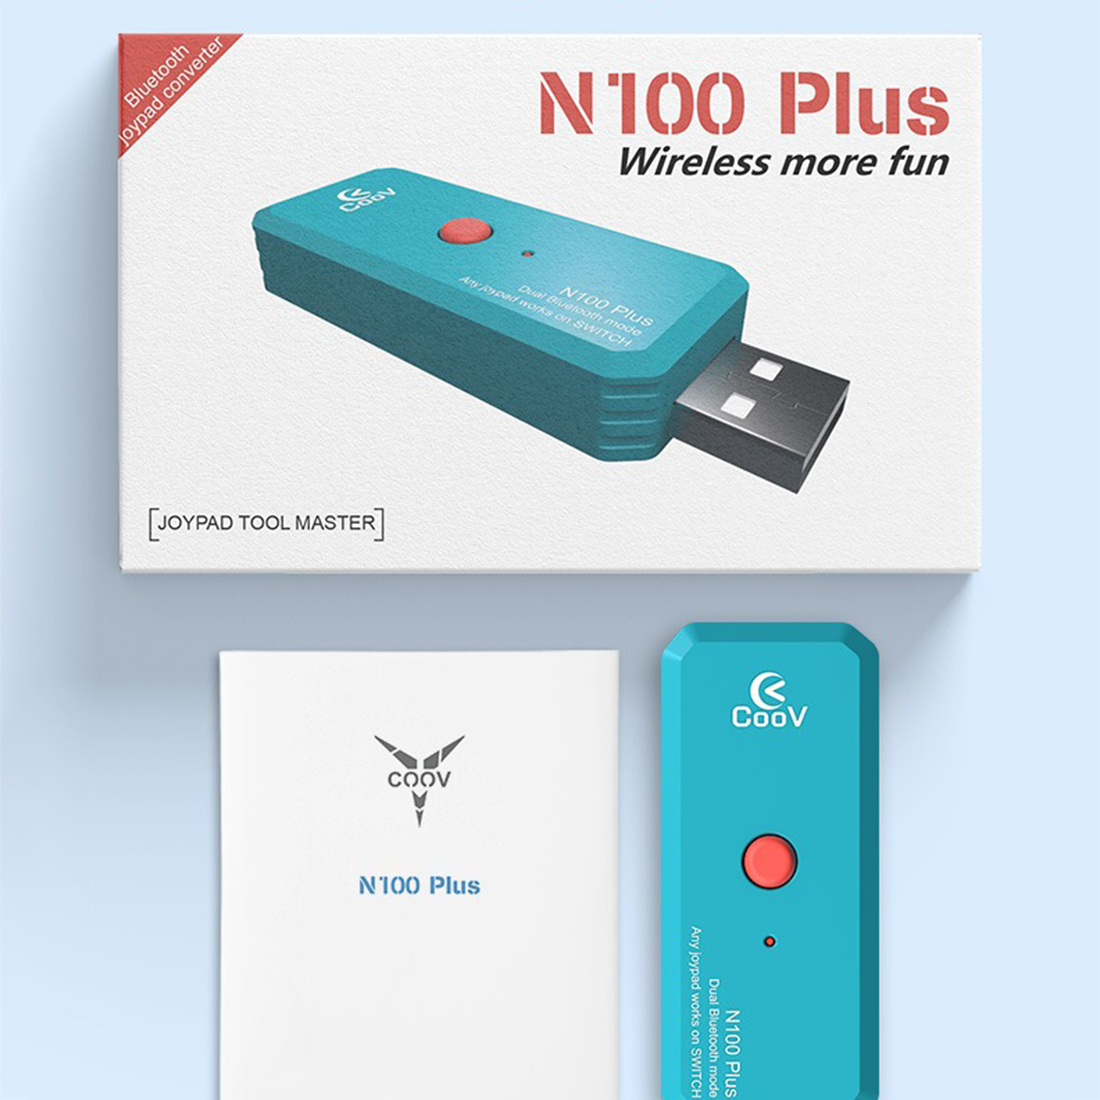 N100 PLUS Portable USB Wireless Adapter Converter with OTG Cable for PS3 / PS4 / Switch Pro - Sky-blue (Random OTG Cable Color)